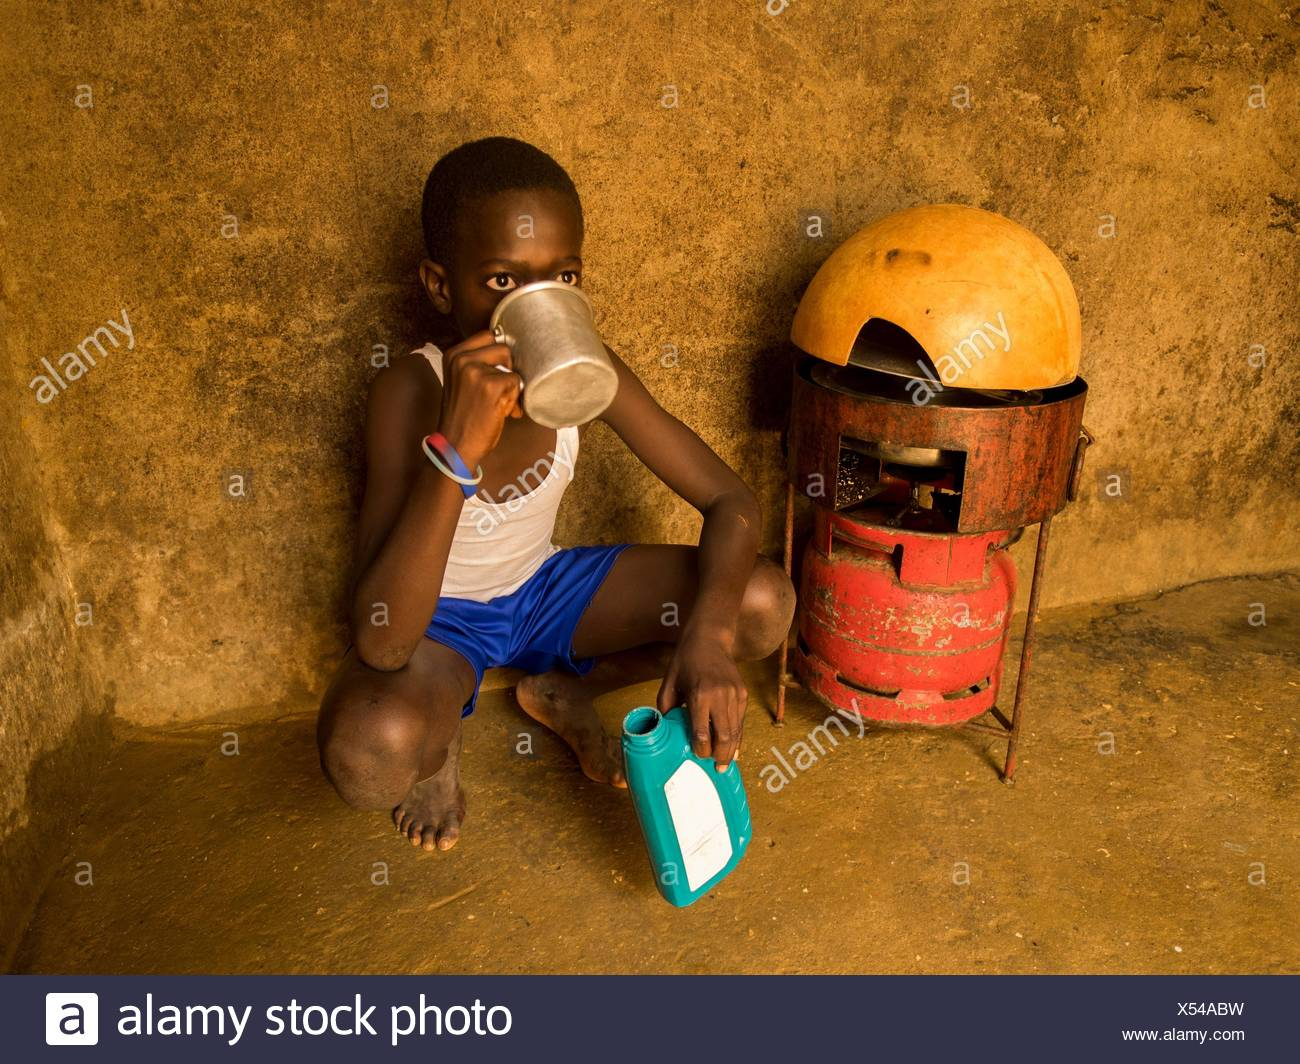 A boy drinking some water. - Stock Image